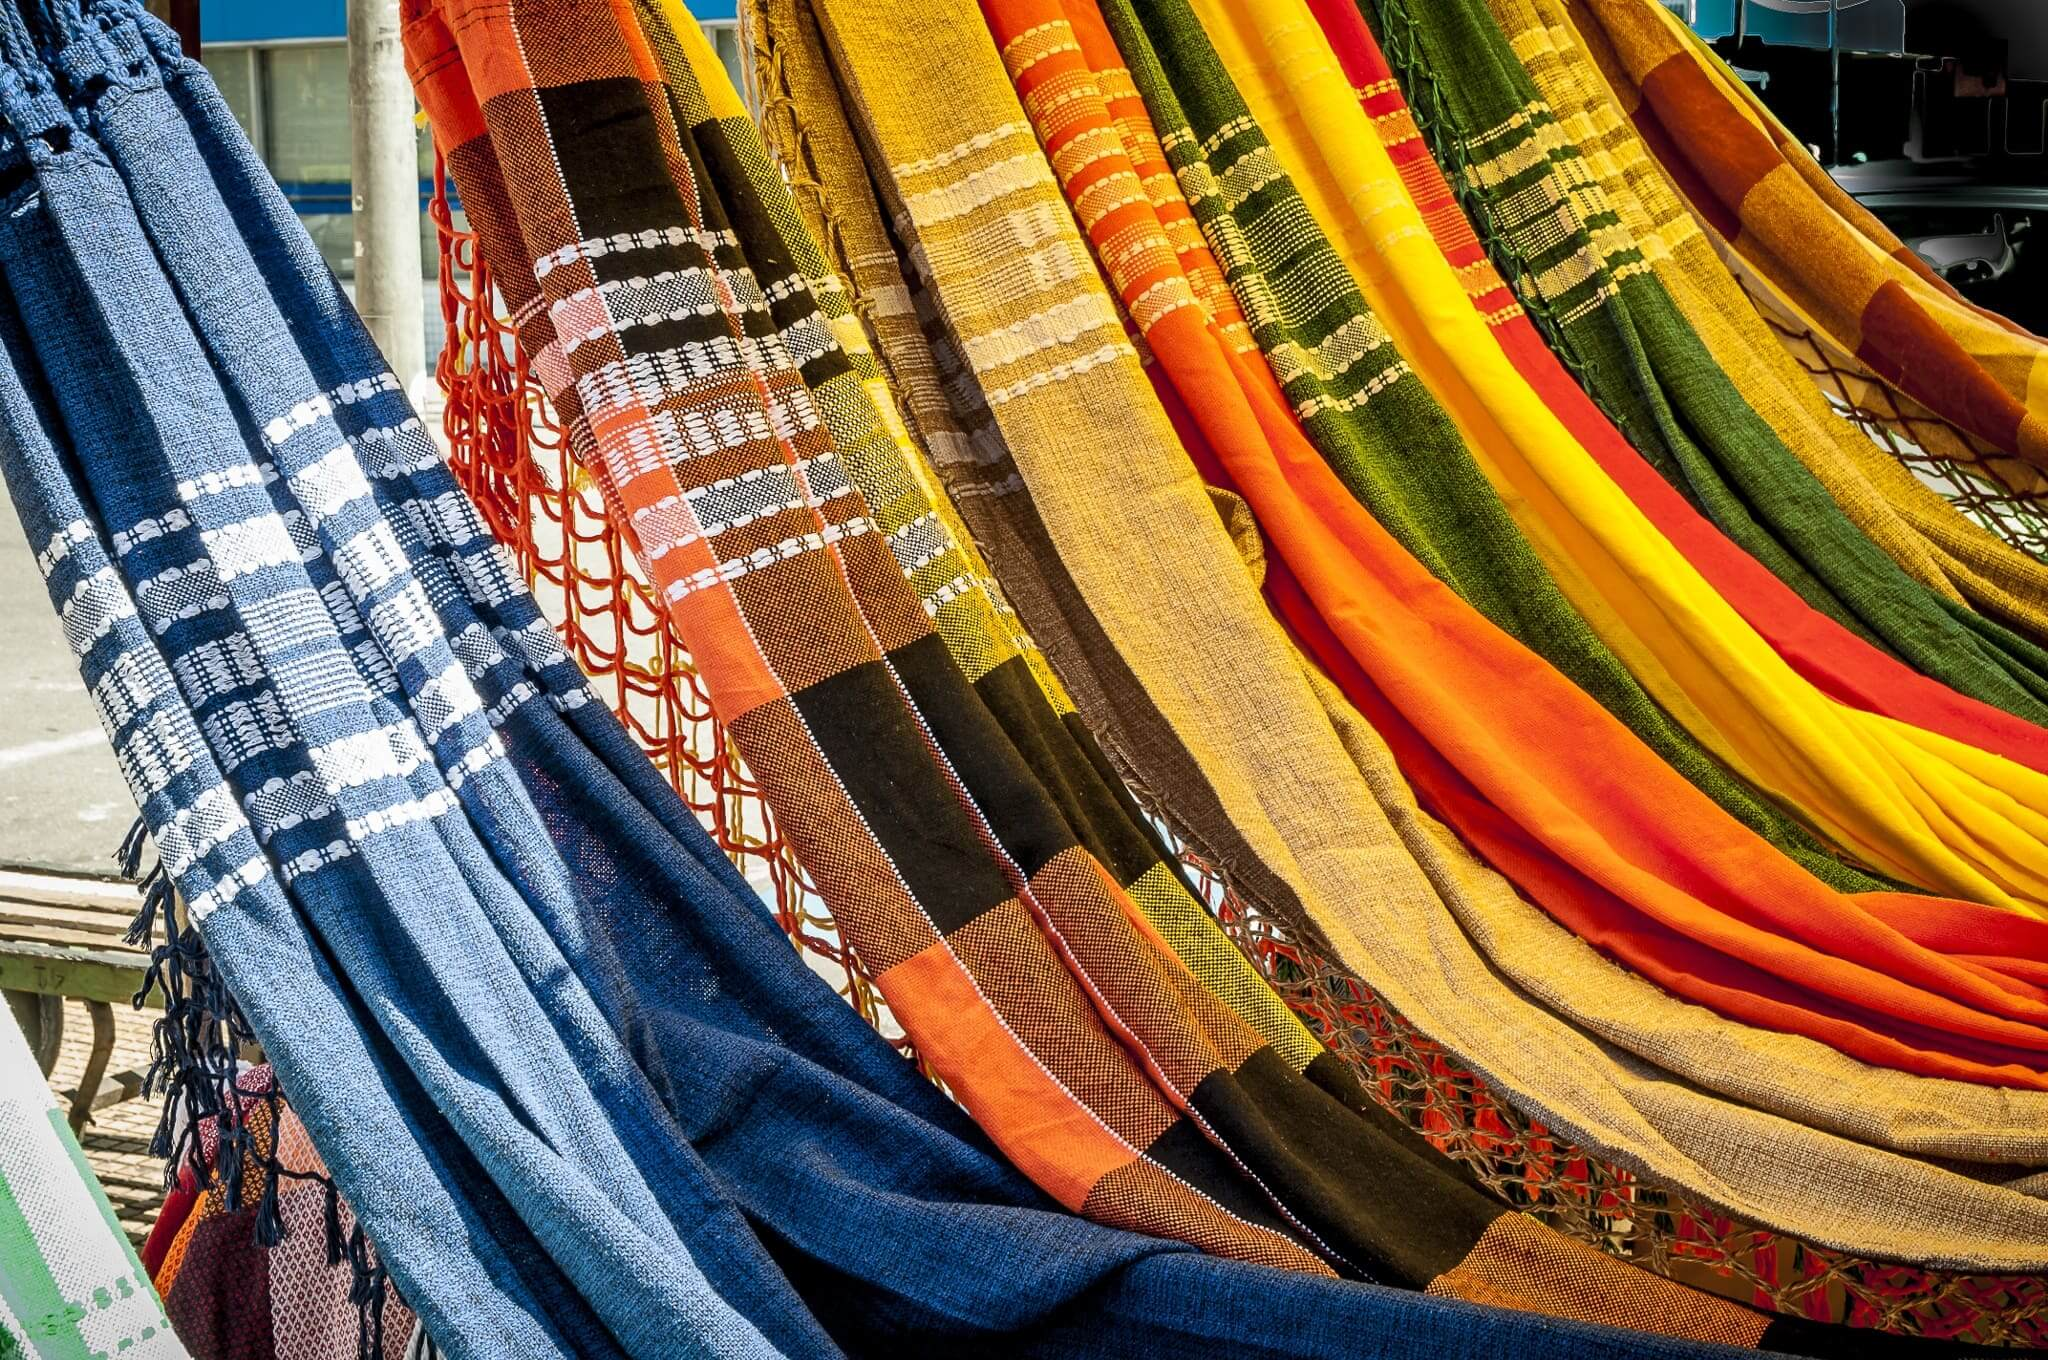 mayan style of hammocks made with cotton clothe